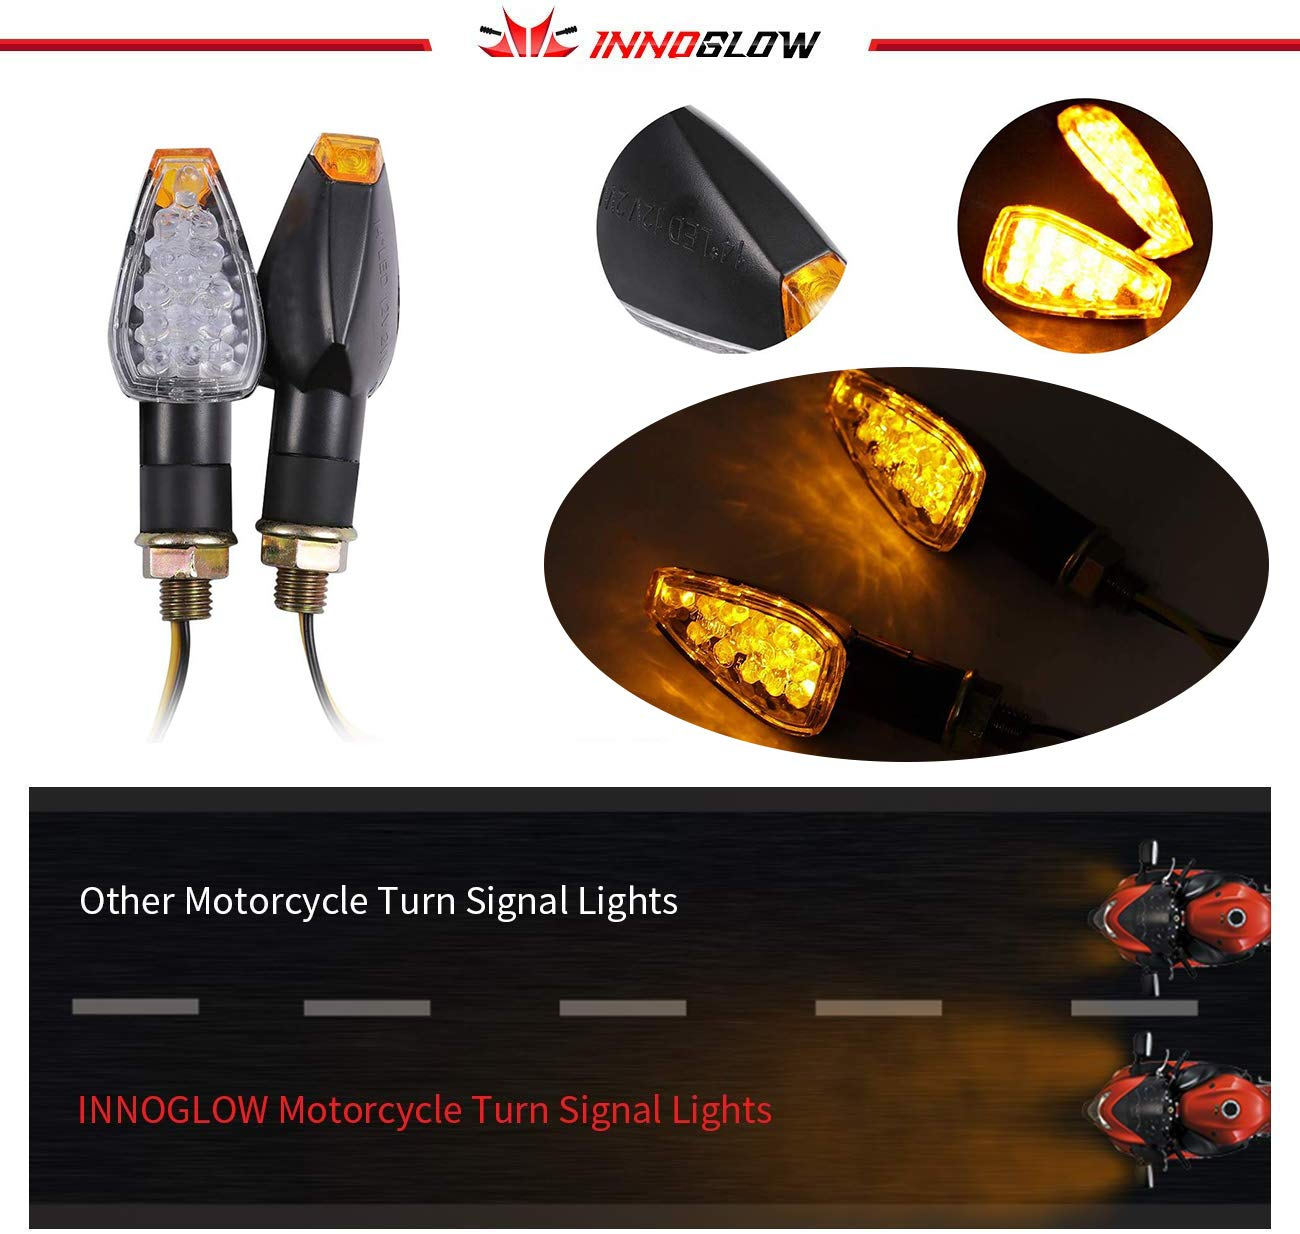 INNOGLOW Motorcycle Turn Signals 2pcs LED Bulb Indicators Motorbike Blinkers Amber Lamp Lights Fits for Choppers Cruisers Touring Motorbike